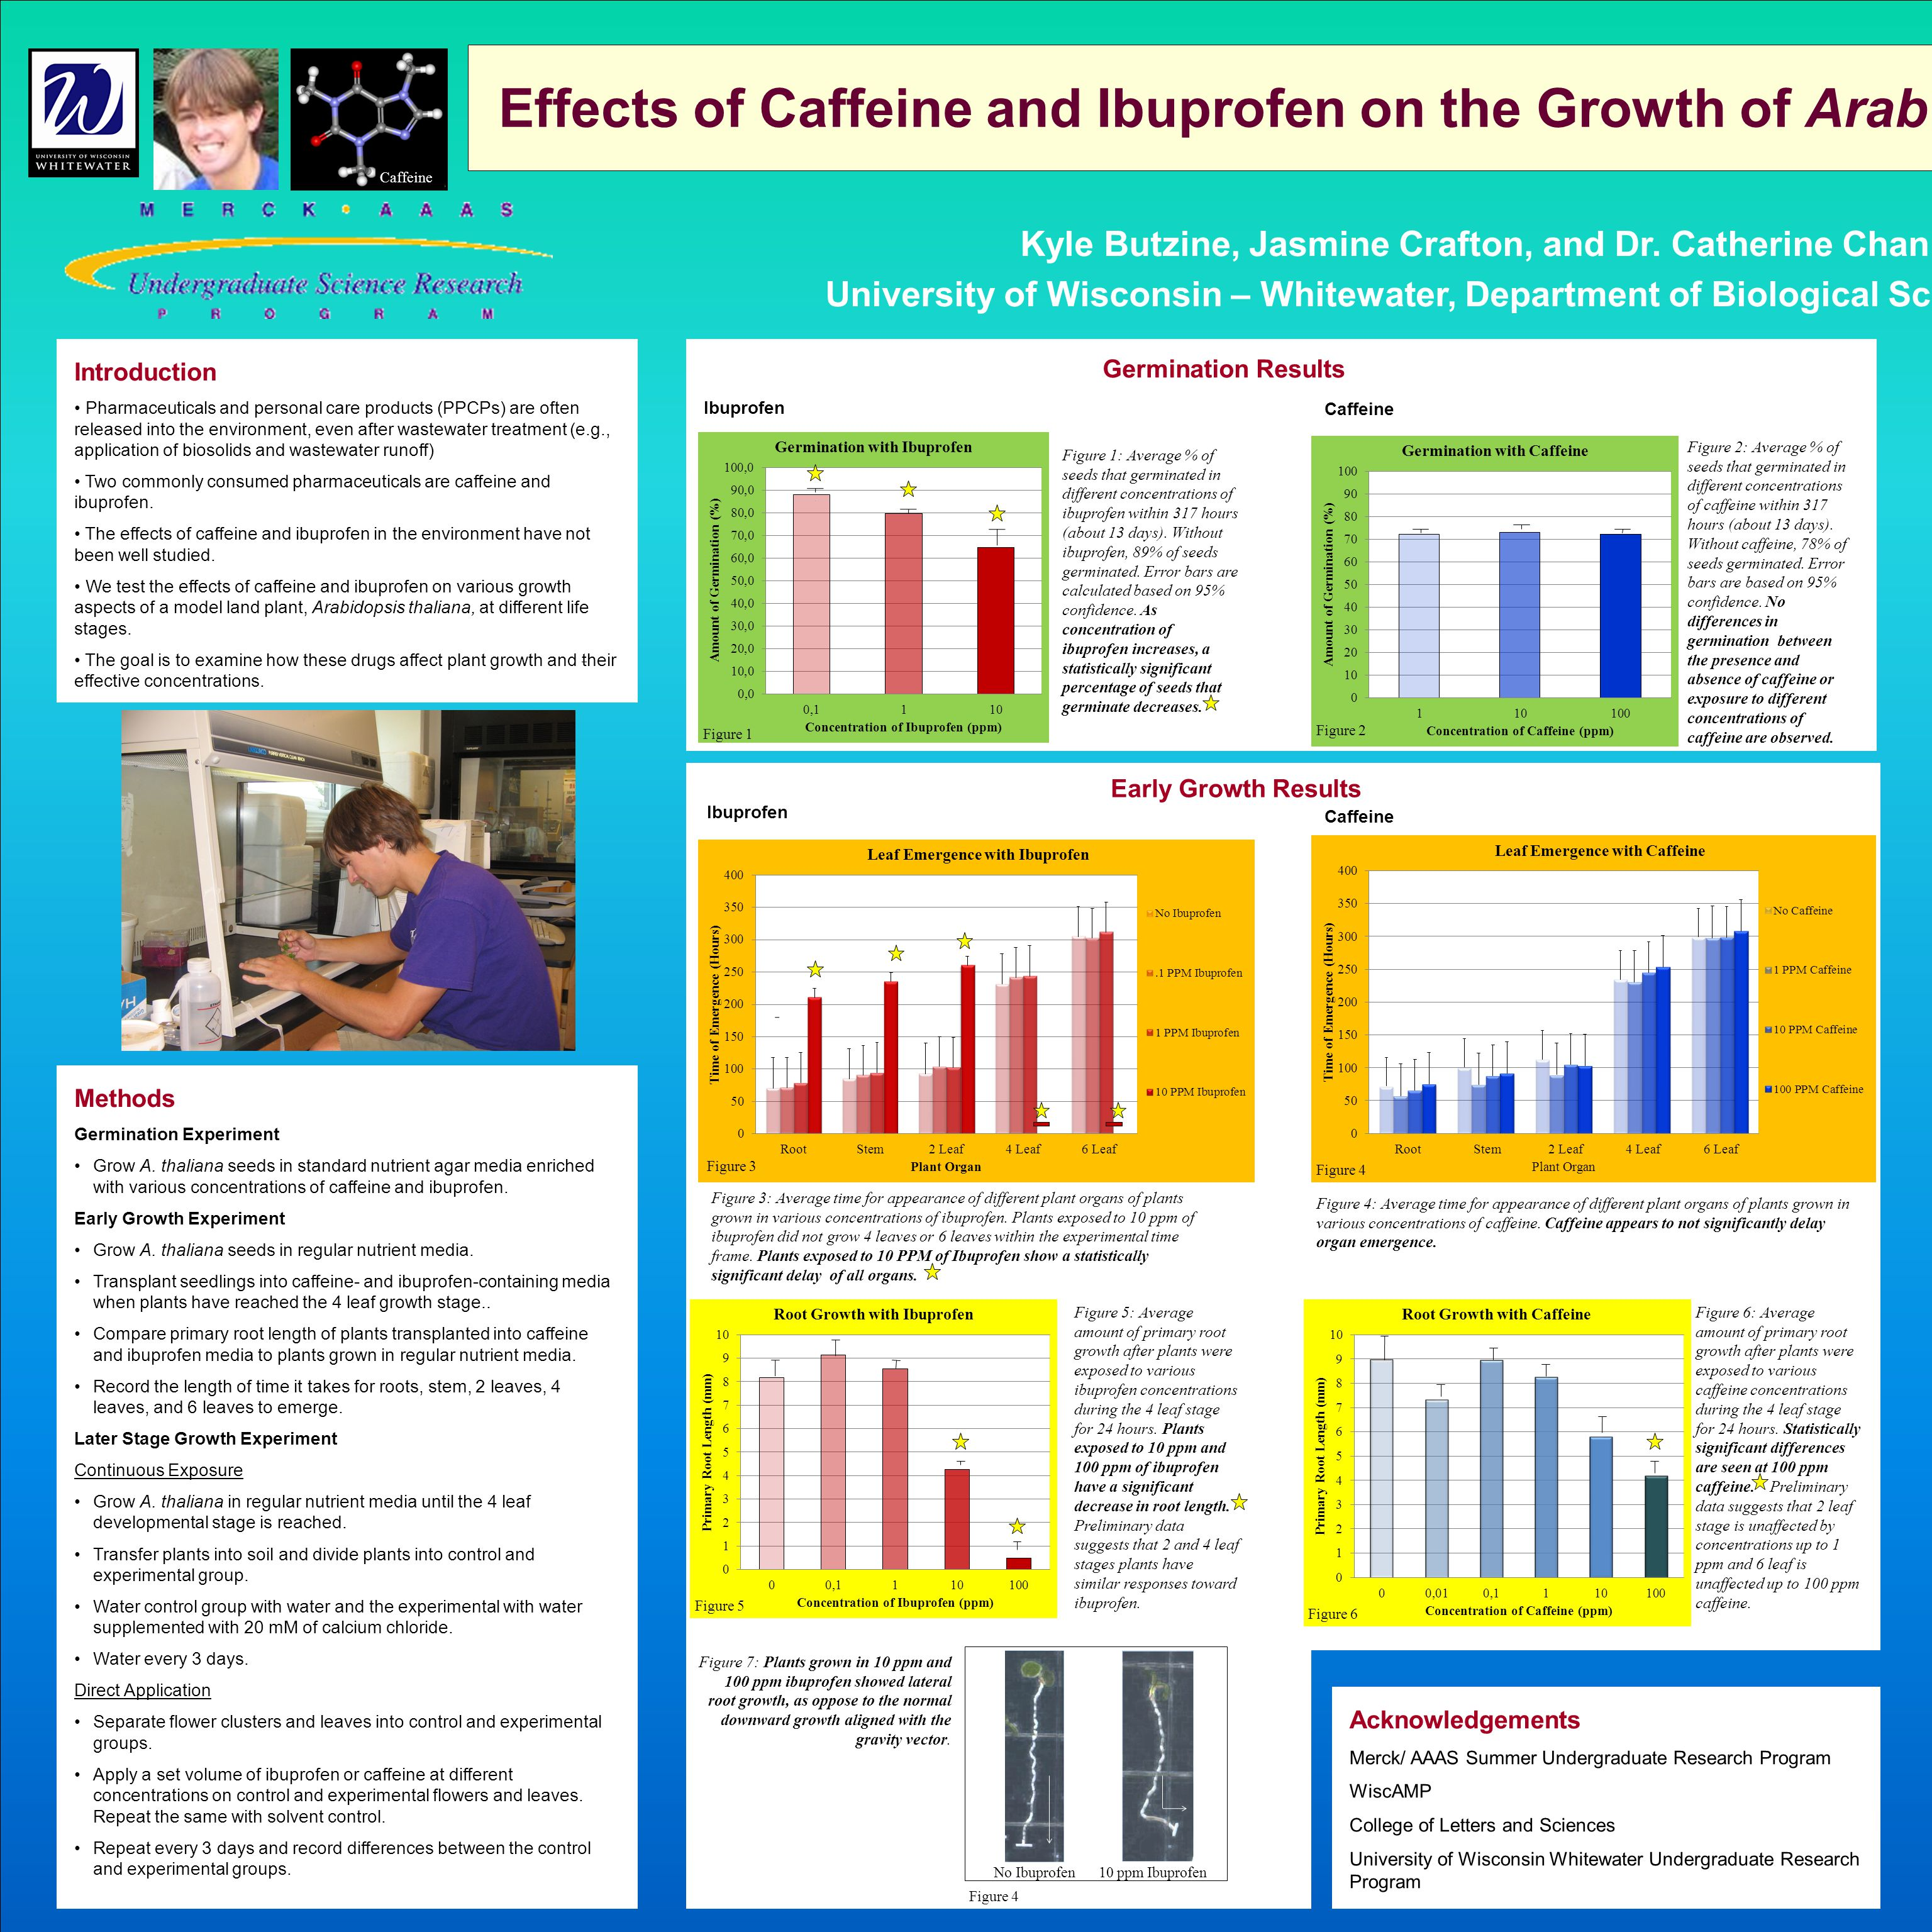 Effects of Caffeine and Ibuprofen on the Growth of Arab Kyle Butzine, Jasmine Crafton, and Dr. Catherine Chan University of Wisconsin – Whitewater, De